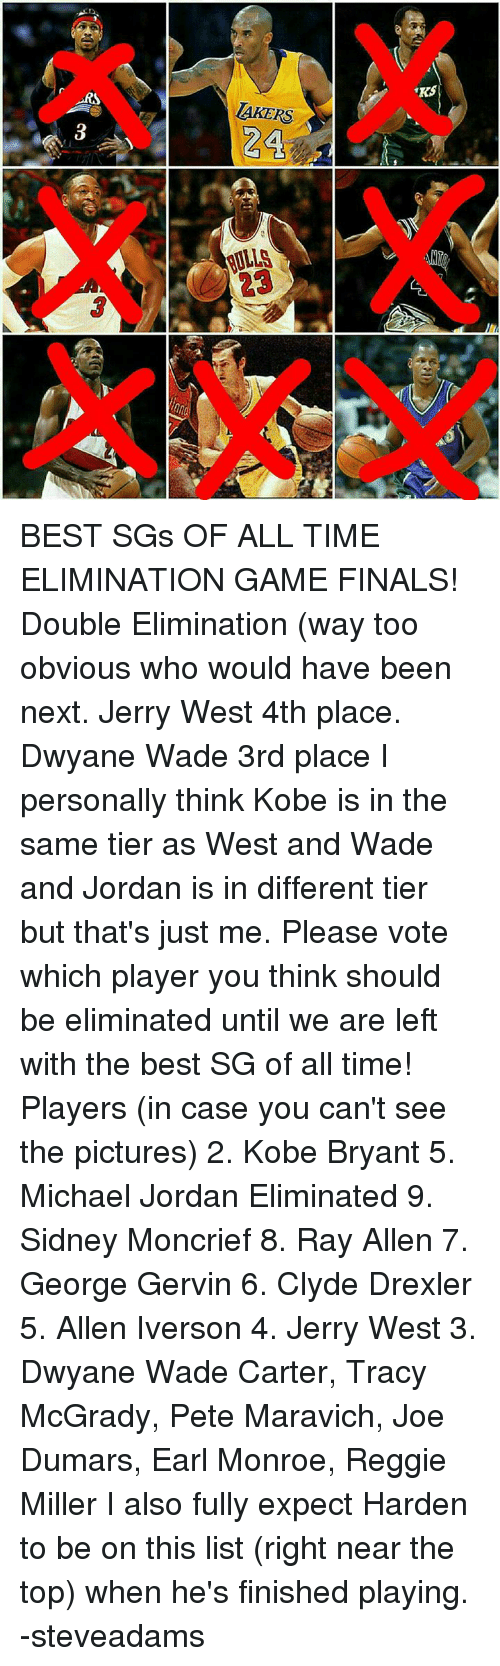 Allen Iverson, Dwyane Wade, and Finals: LaKERS  RULLA  RS BEST SGs OF ALL TIME ELIMINATION GAME FINALS!   Double Elimination (way too obvious who would have been next.   Jerry West 4th place. Dwyane Wade 3rd place   I personally think Kobe is in the same tier as West and Wade and Jordan is in different tier but that's just me.   Please vote which player you think should be eliminated until we are left with the best SG of all time!  Players (in case you can't see the pictures) 2. Kobe Bryant 5. Michael Jordan  Eliminated 9. Sidney Moncrief 8. Ray Allen 7. George Gervin 6. Clyde Drexler 5. Allen Iverson 4. Jerry West 3. Dwyane Wade   Carter, Tracy McGrady, Pete Maravich, Joe Dumars, Earl Monroe, Reggie Miller  I also fully expect Harden to be on this list (right near the top) when he's finished playing.   -steveadams